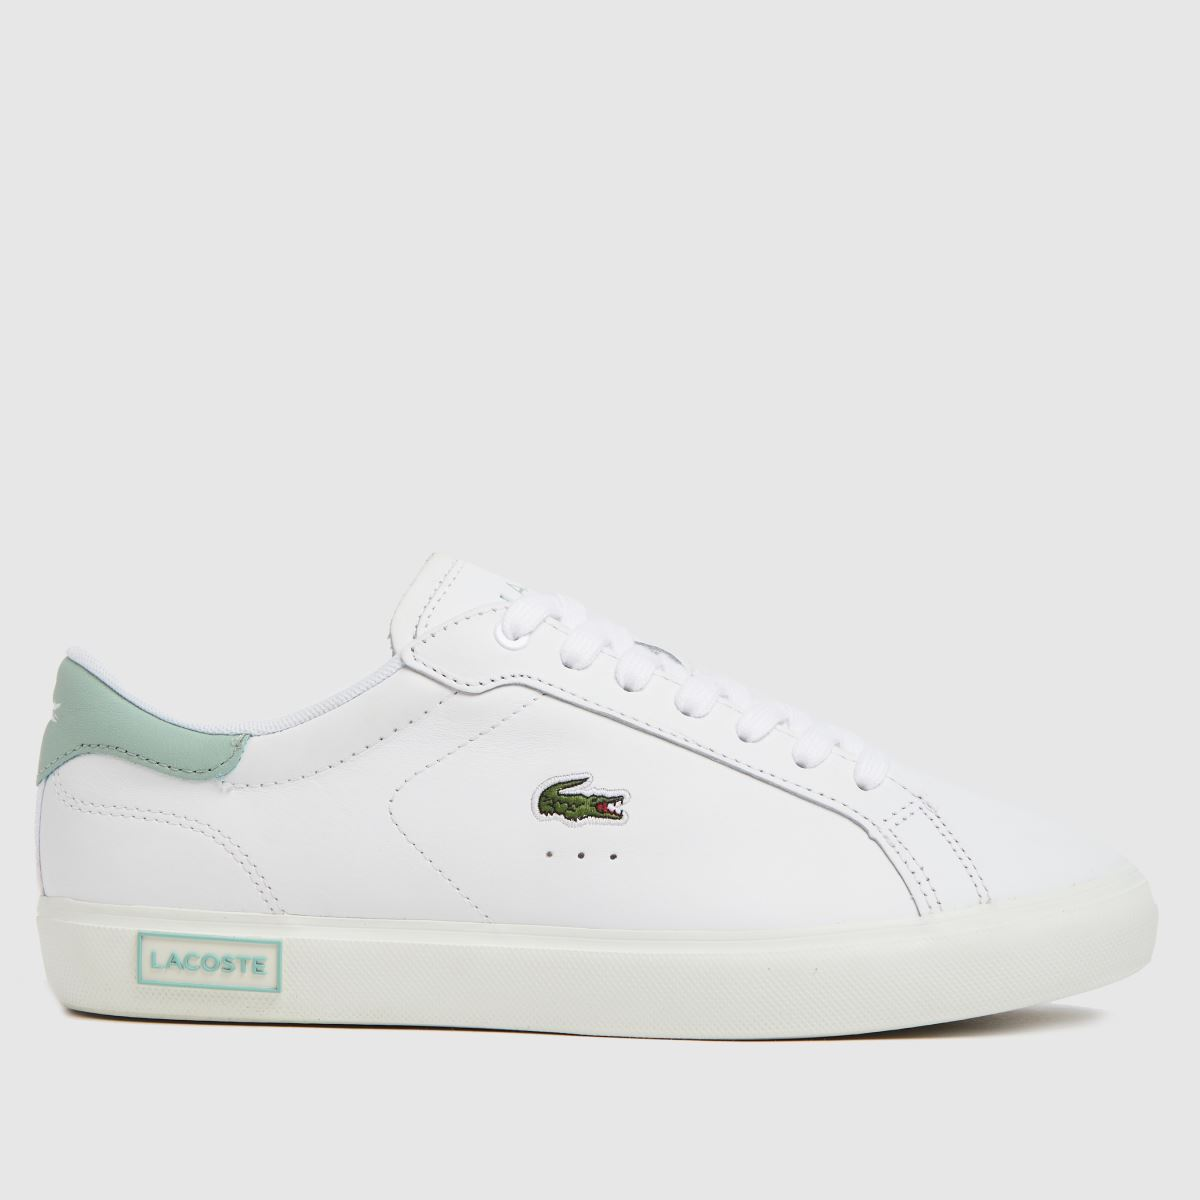 Lacoste White & Green Powercourt Trainers